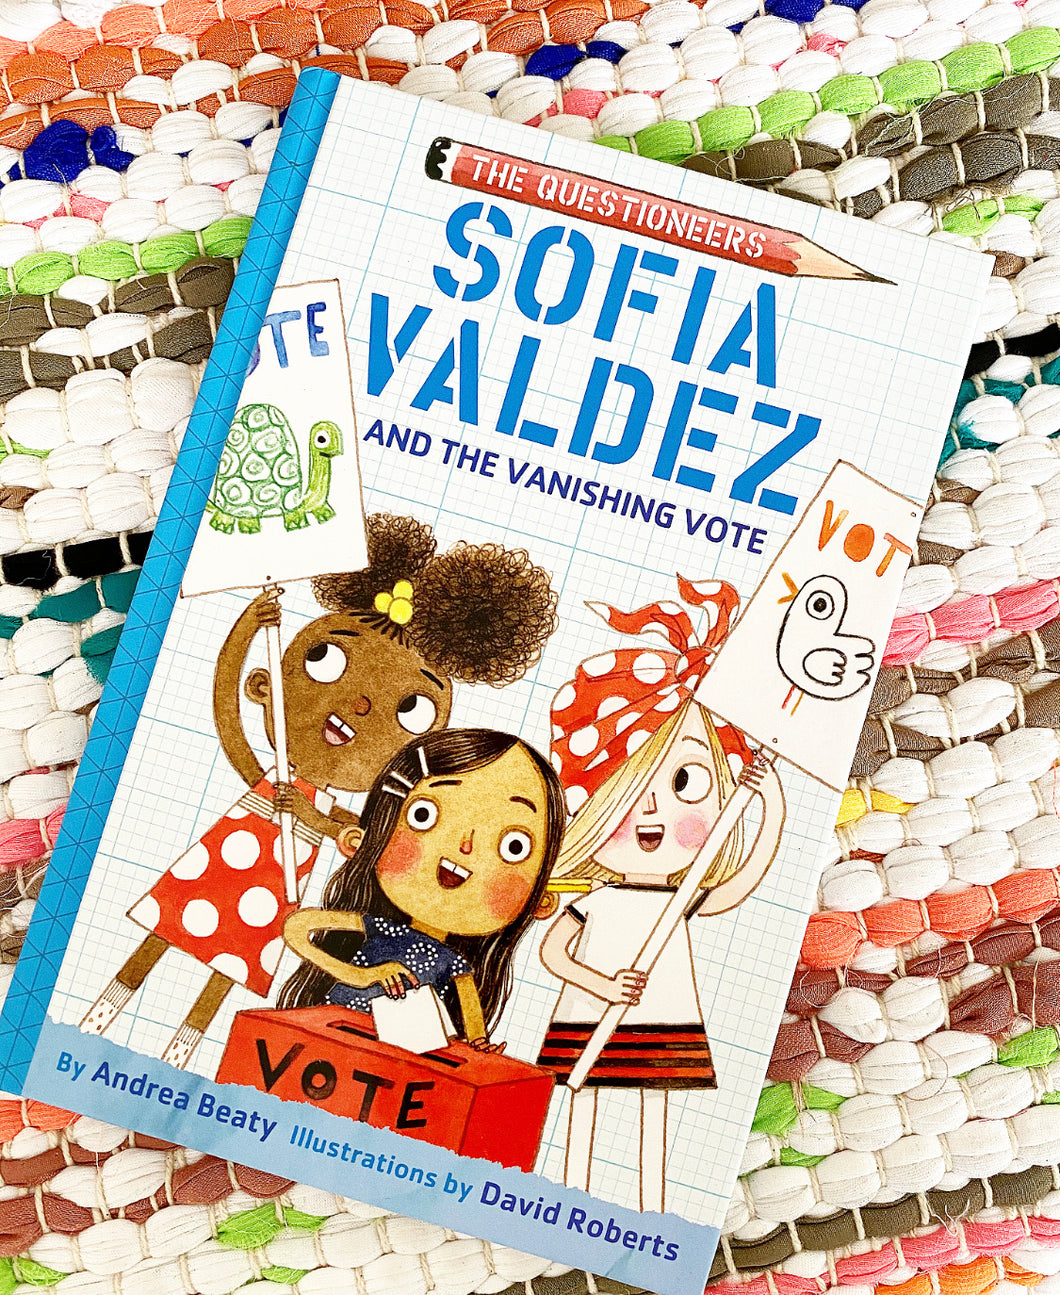 Sofia Valdez and the Vanishing Vote Book | Andrea Beaty